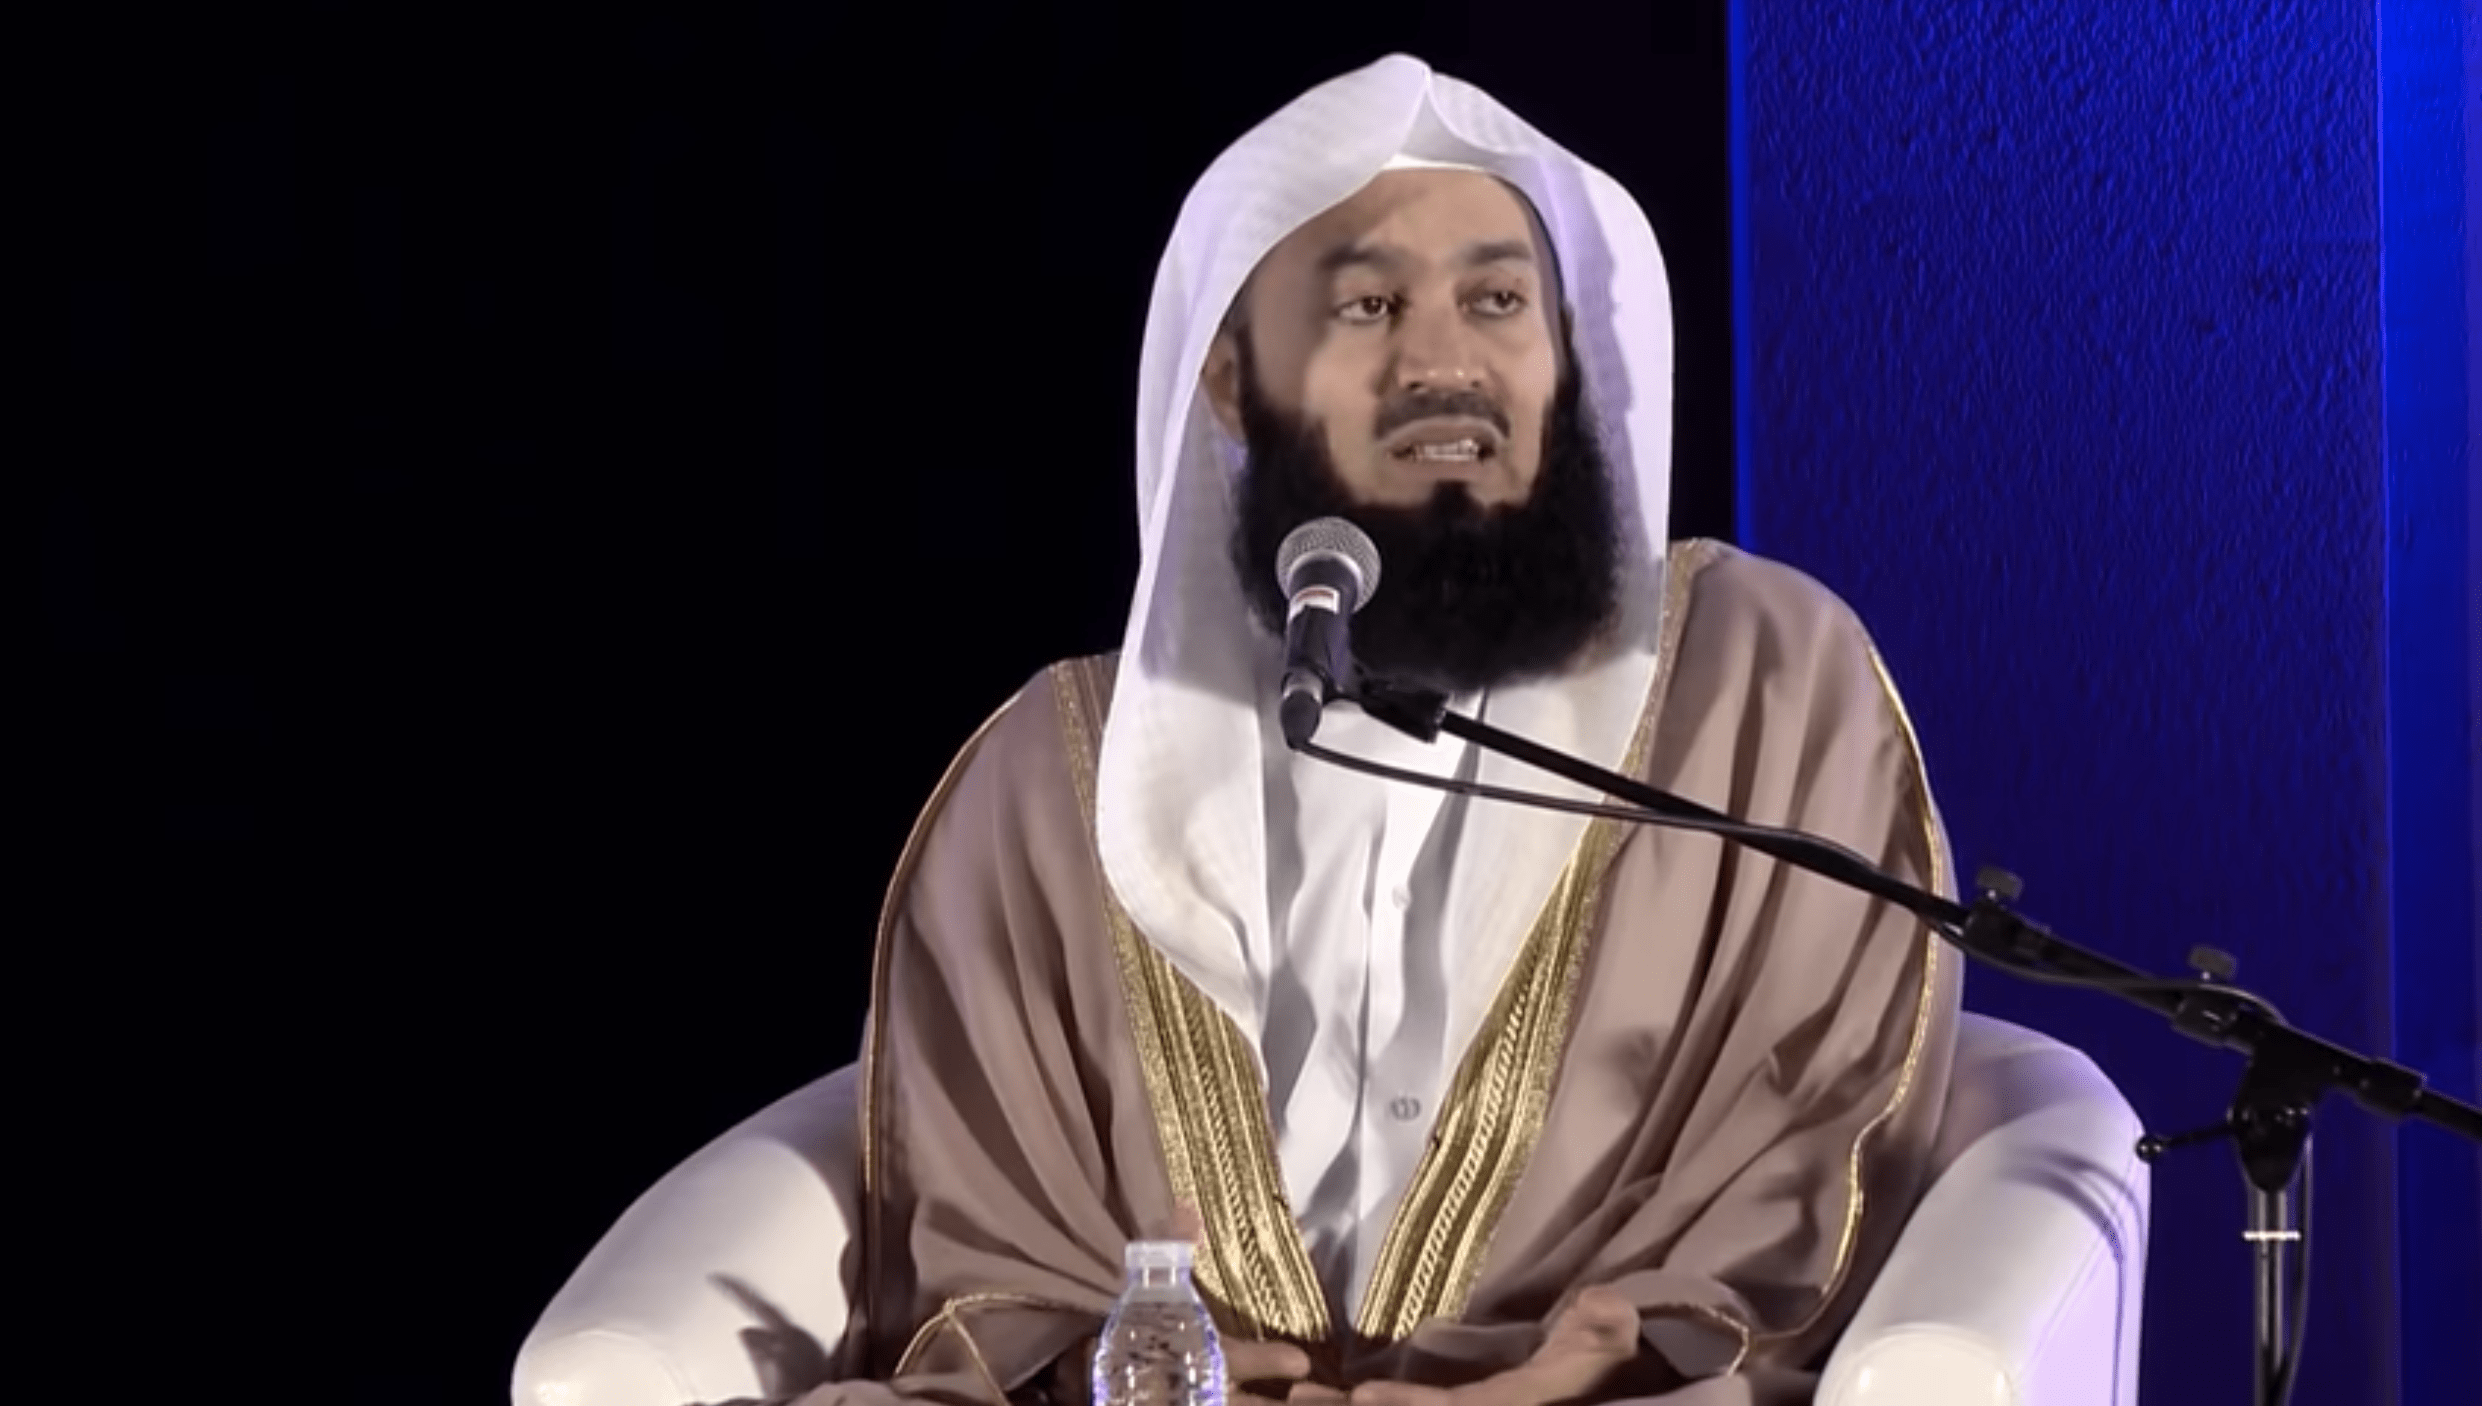 Ismail ibn Musa Menk – Tolerance, Togetherness & Islam